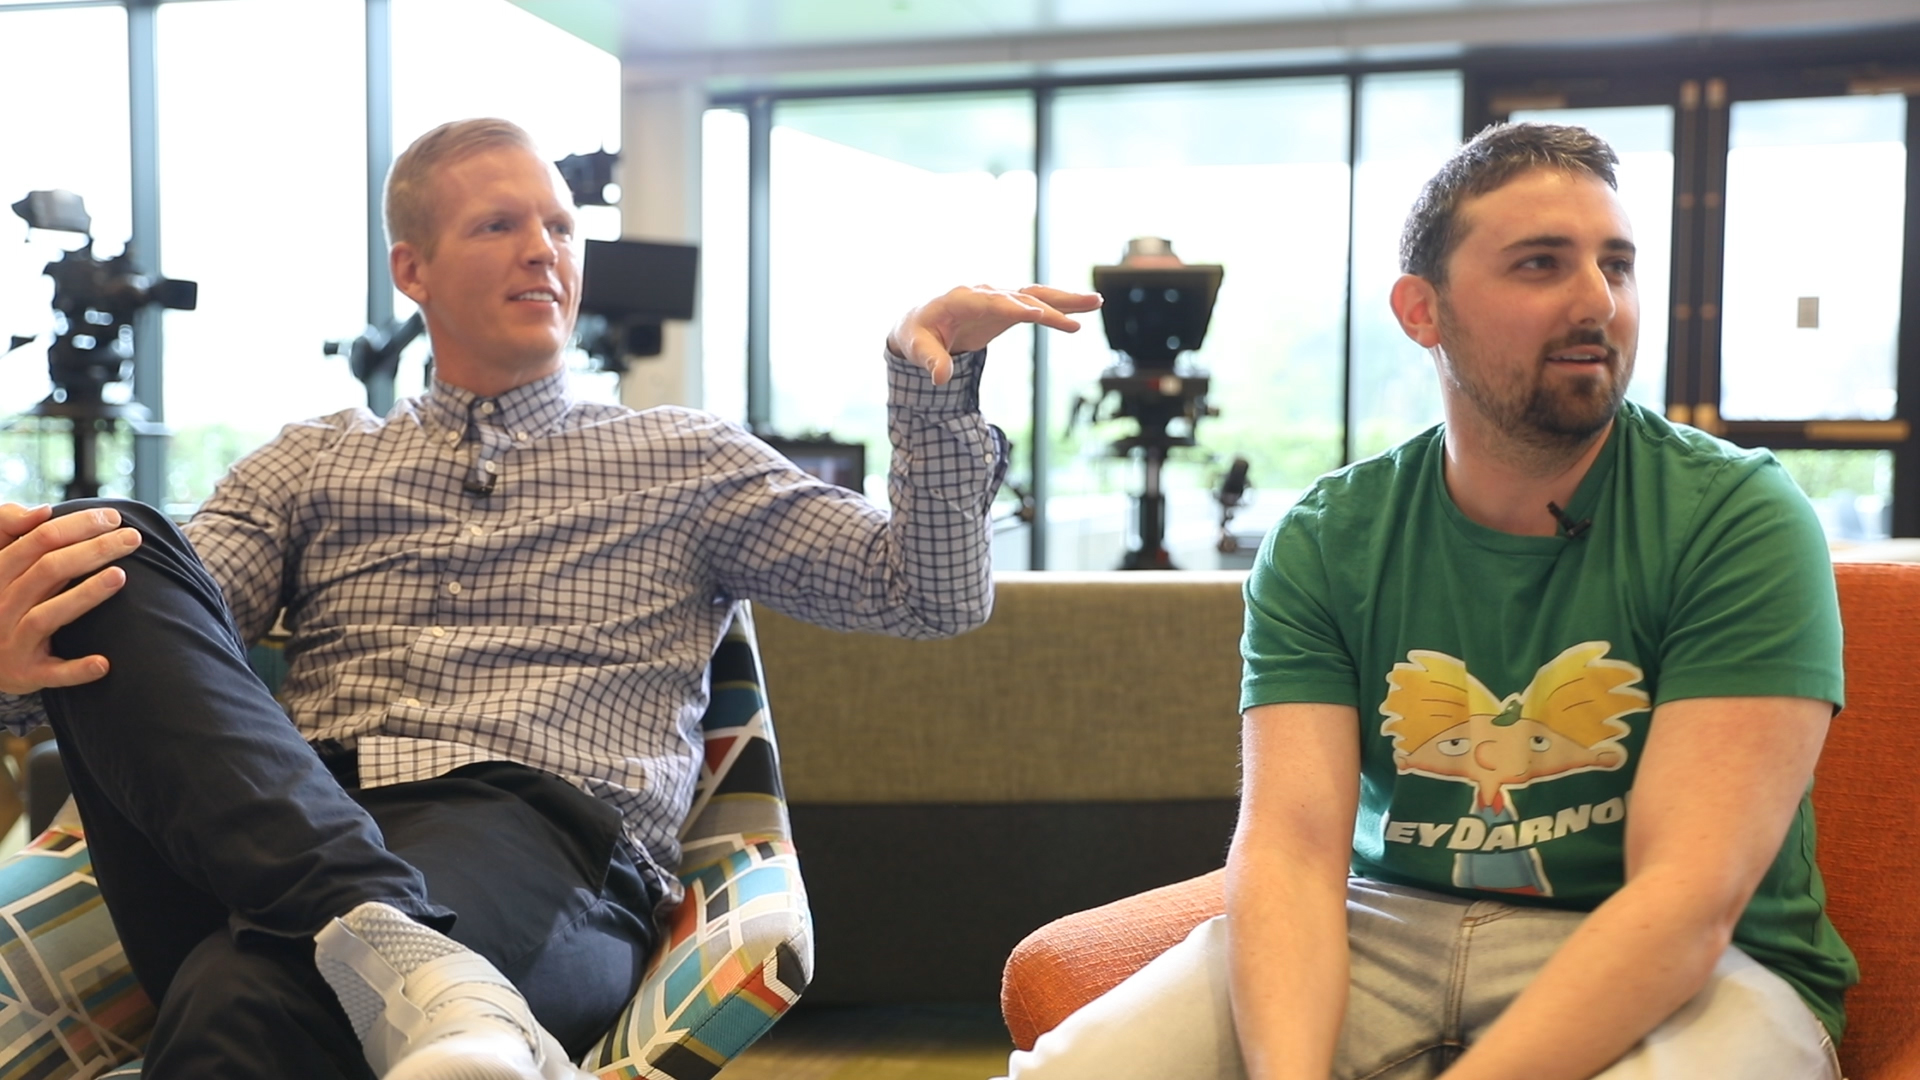 2019 NFL draft: New York Jets fan re-lives bad draft picks with Chris Simms